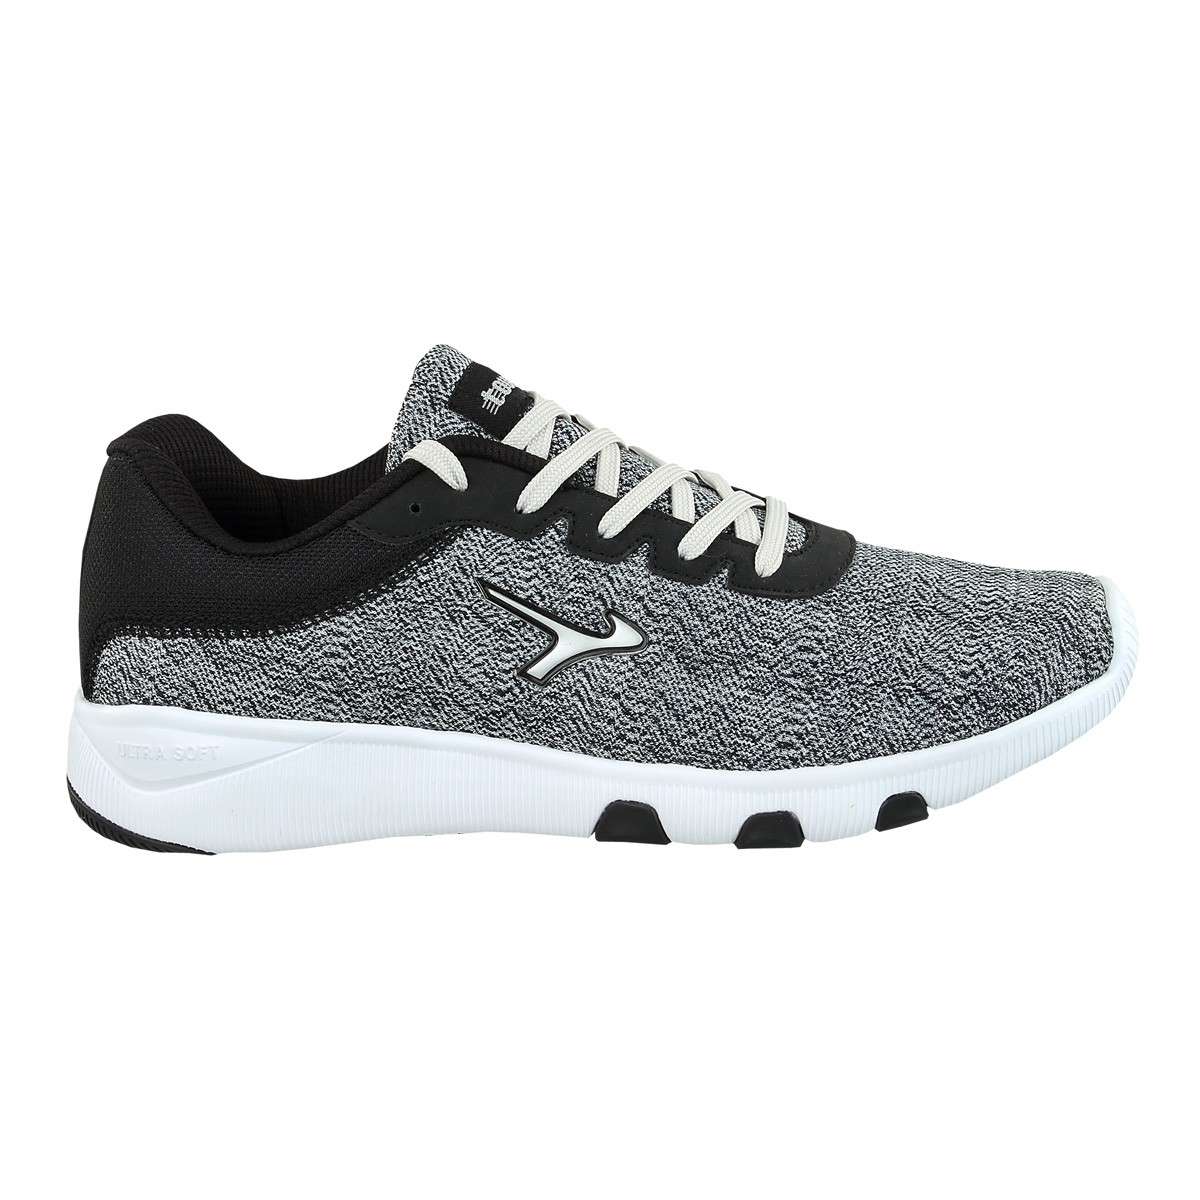 Touch-953-Silver/Black